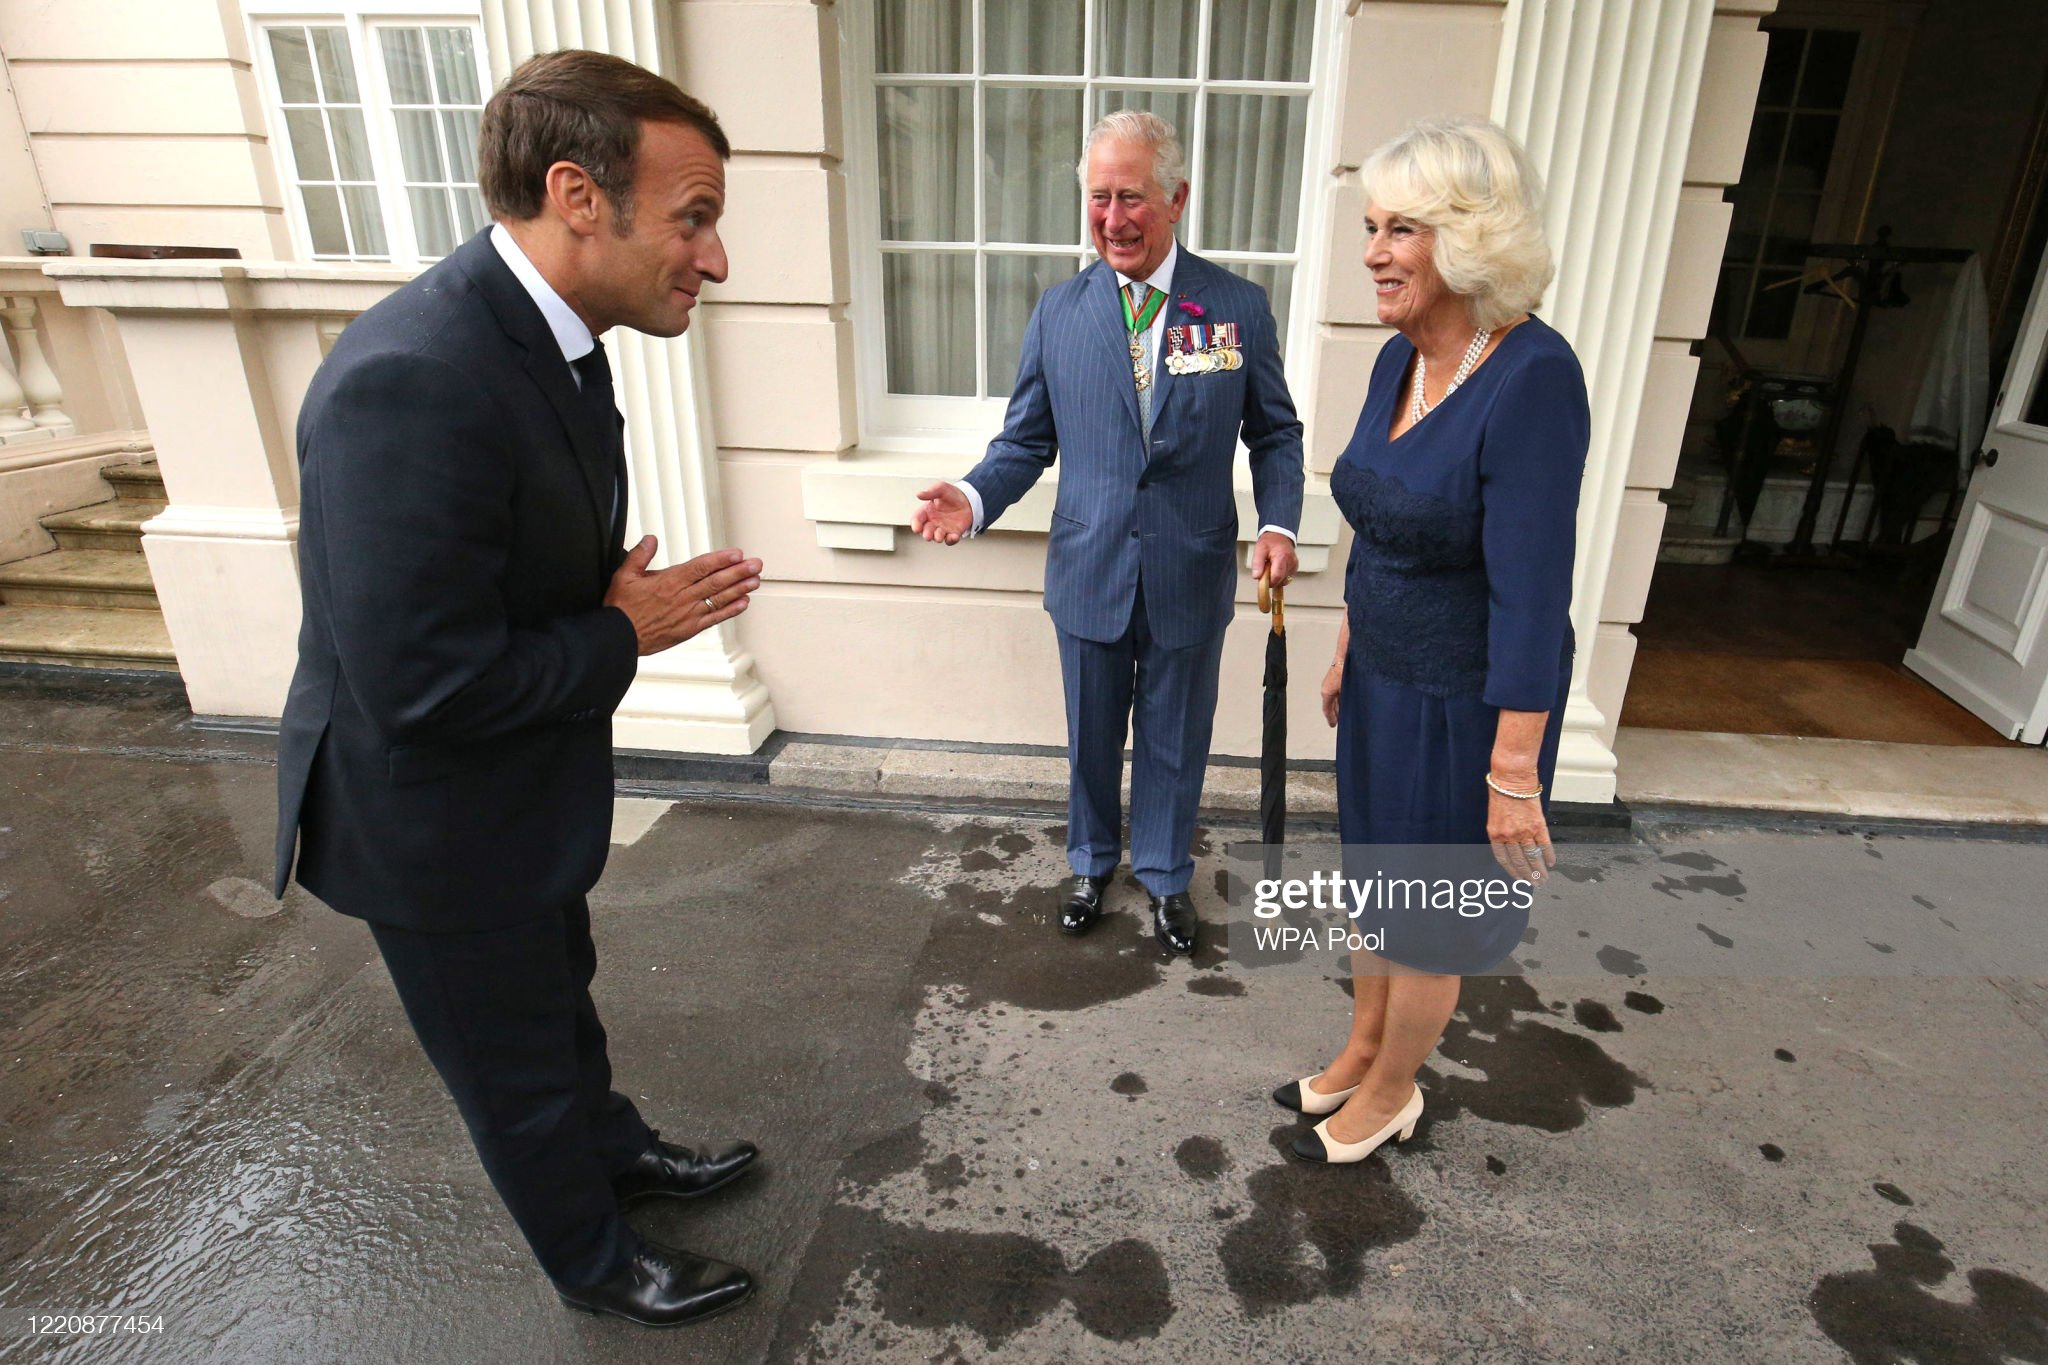 prince-charles-prince-of-wales-and-camilla-duchess-of-cornwall-greet-picture-id1220877454